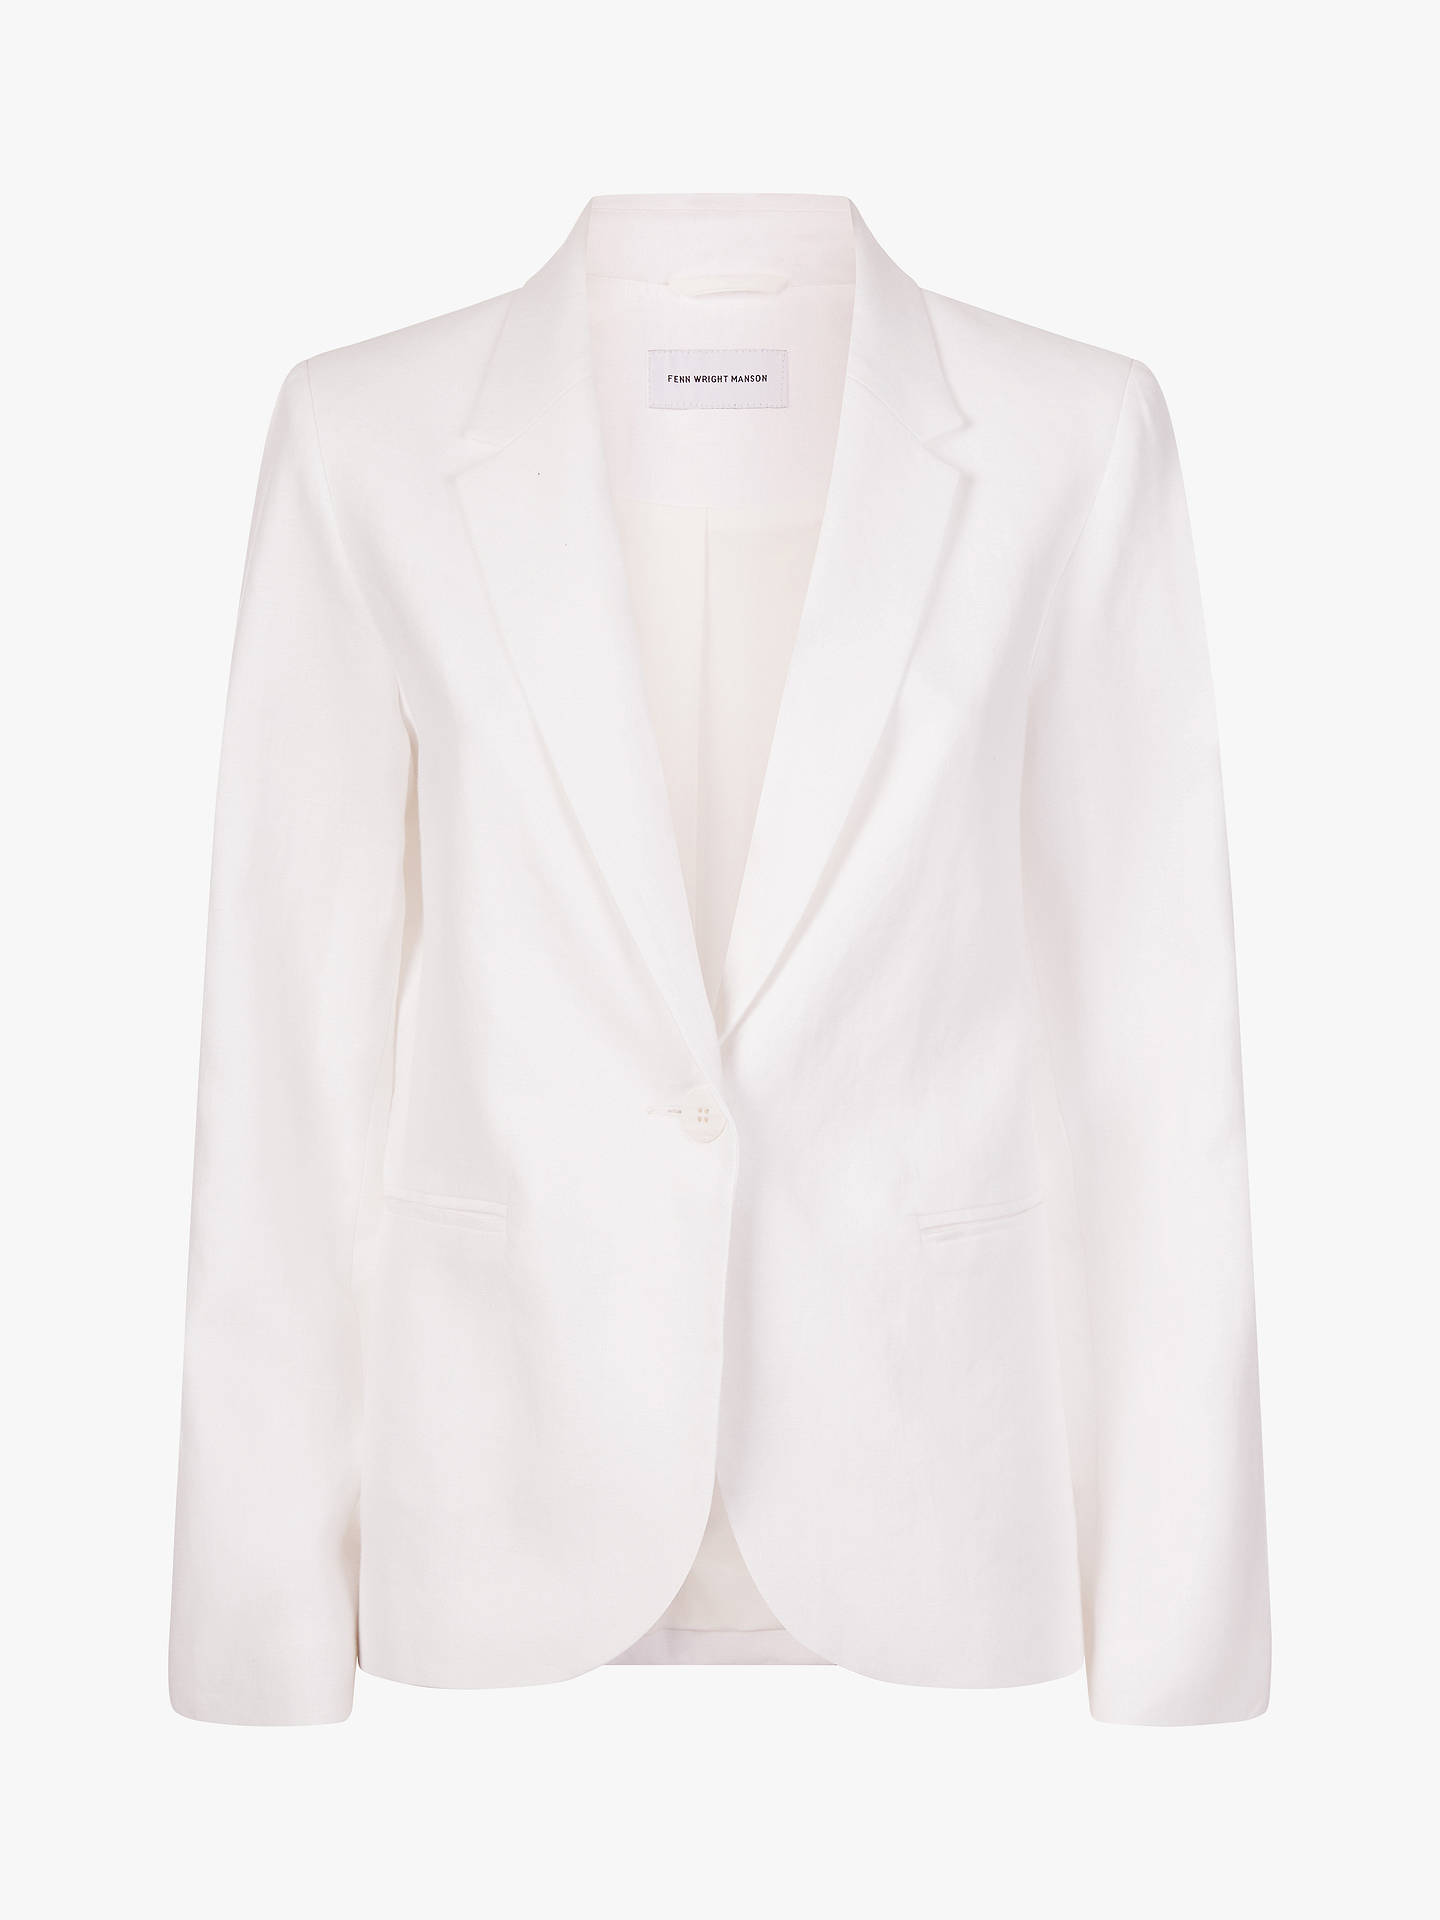 Buy Fenn Wright Manson Avani Linen Jacket, White, 12 Online at johnlewis.com